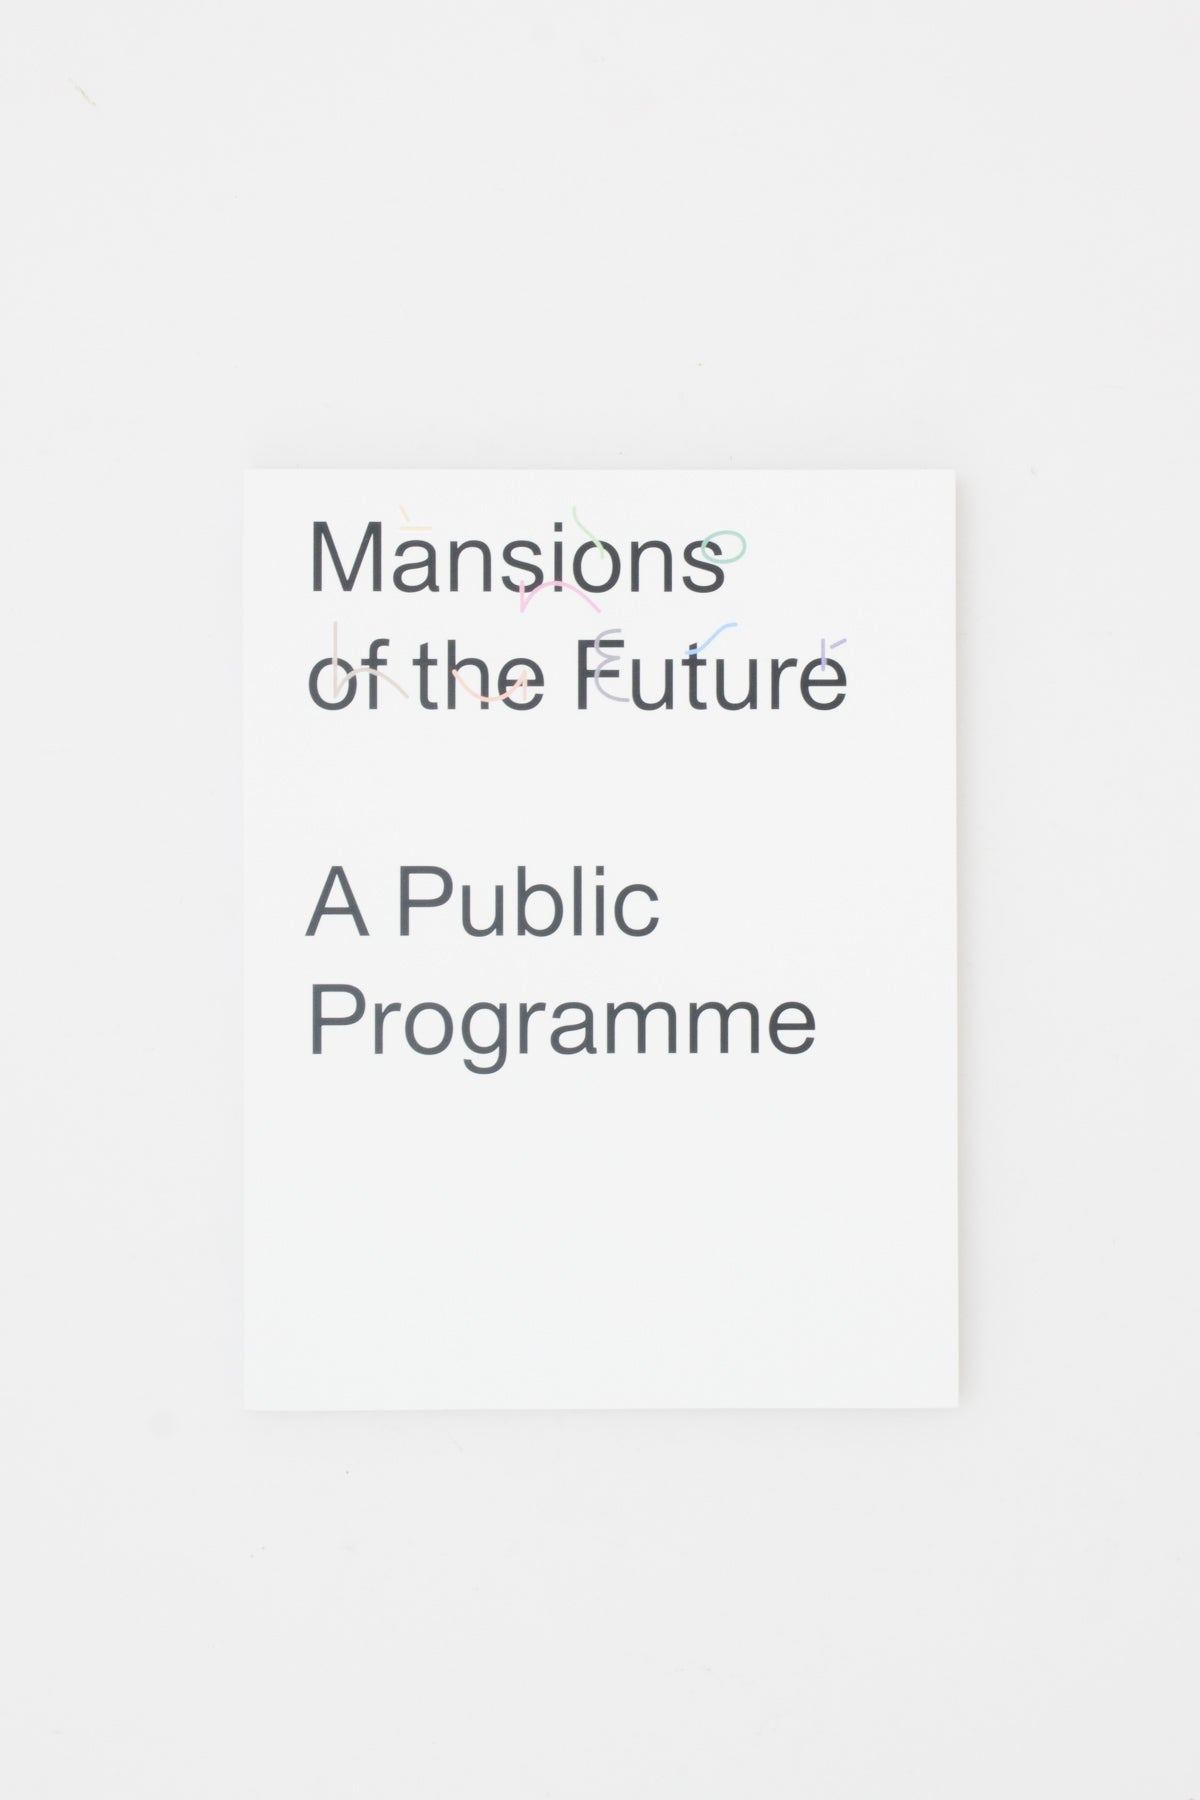 Mansions of the Future: A Public Programme